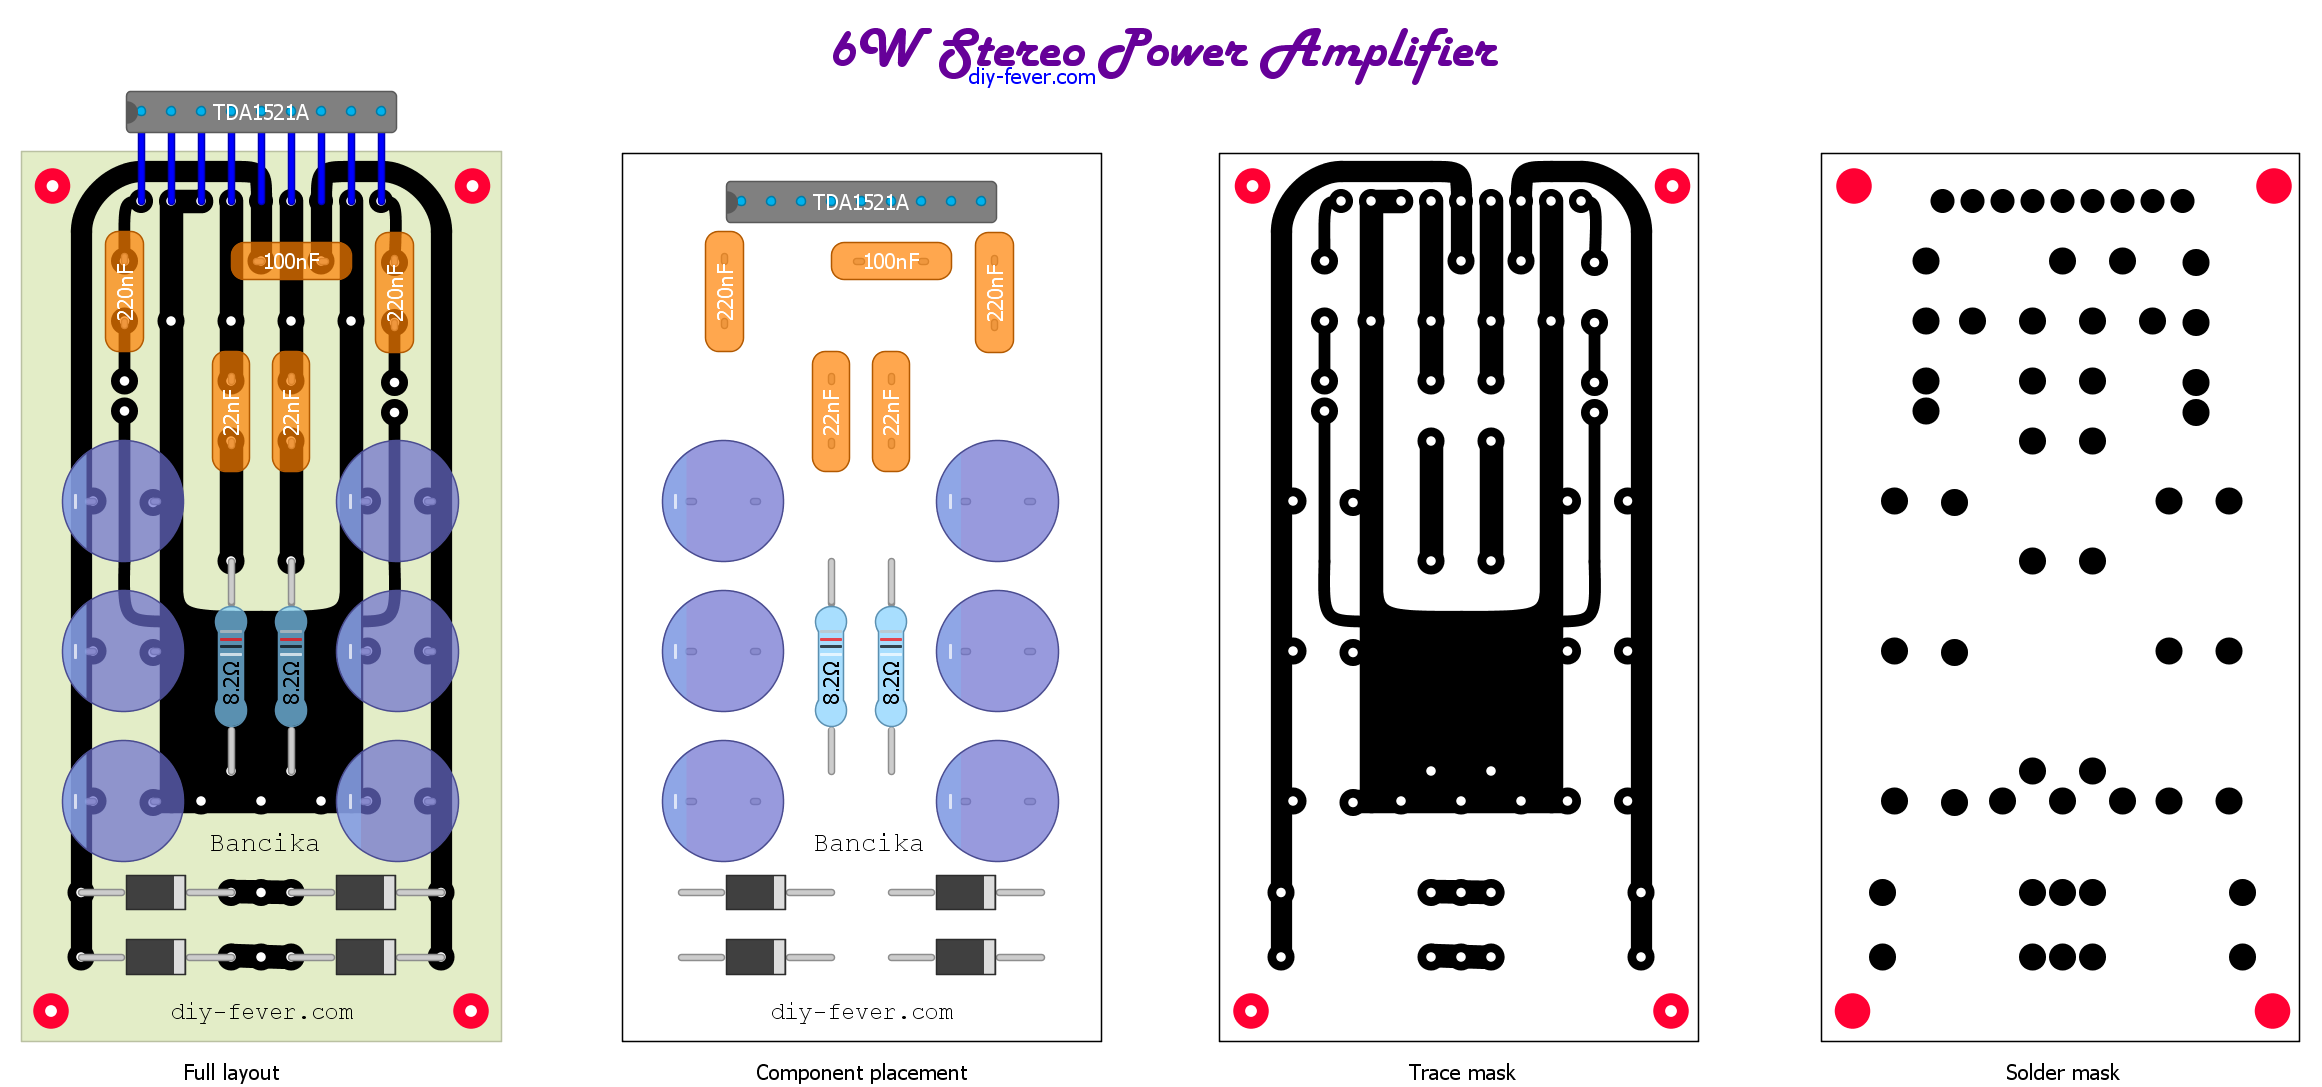 2x6w Stereo Amp Diy Fever Circuits Gt Boss Dd 2 Digital Delay Guitar Pedal Schematic Diagram Data Sheet Calls For A Pair Of 680uf Capacitors In Addition To Those I Added 820uf And 220uf Total 1720uf Per Rail